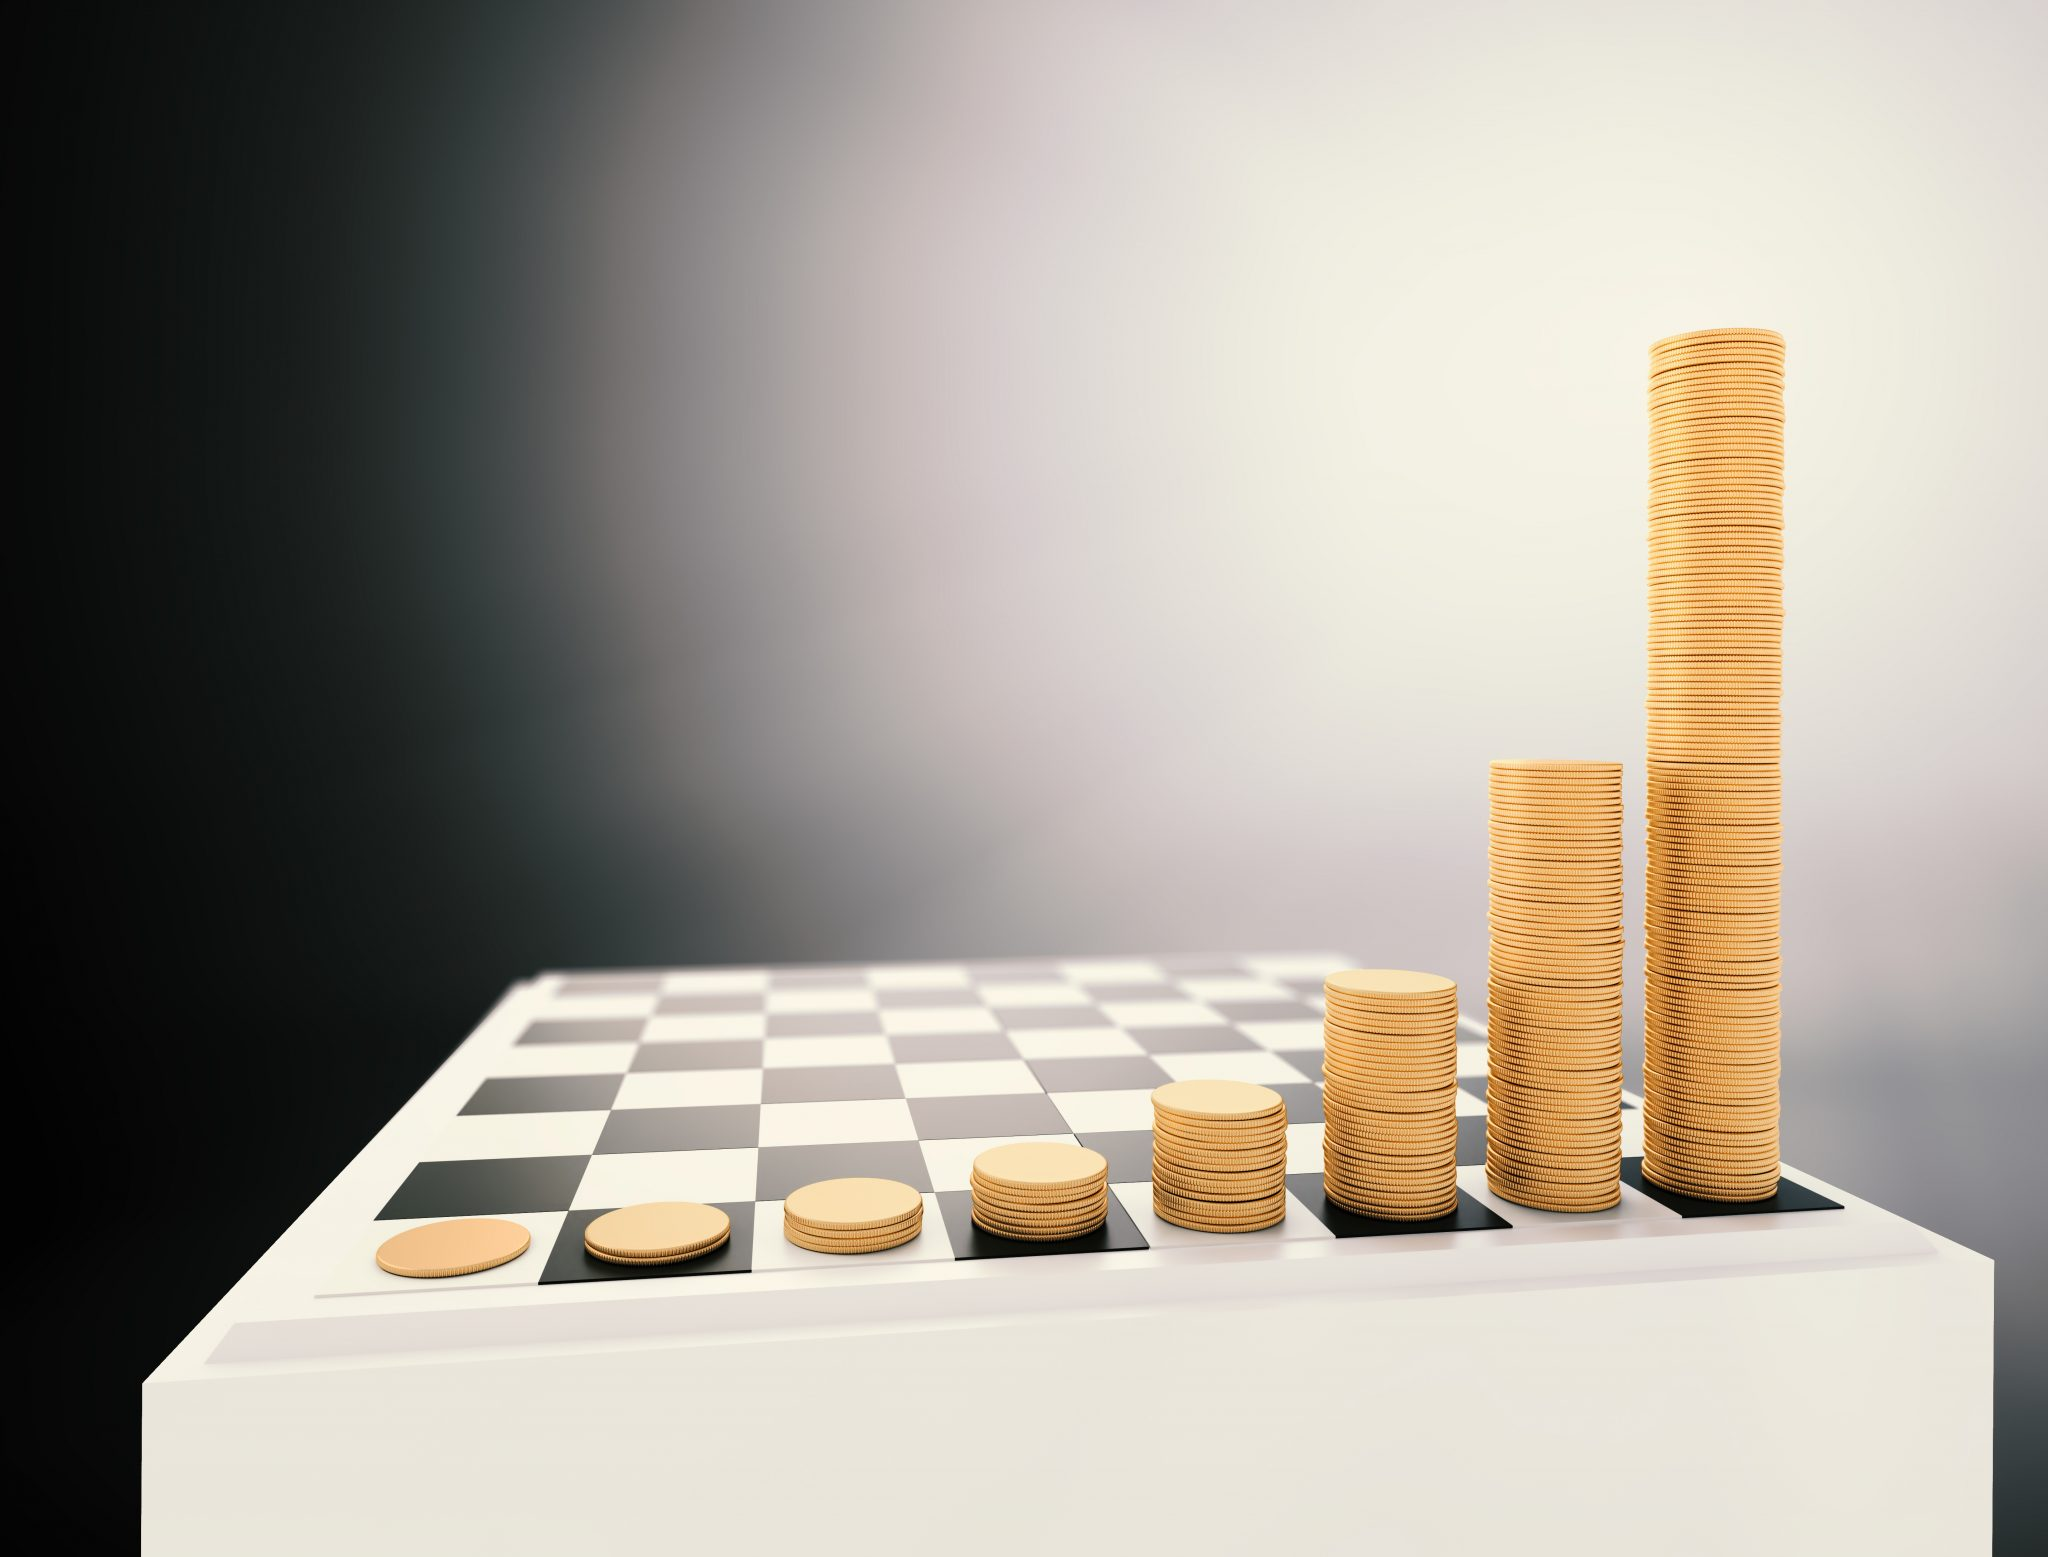 Chessboard with growing height coins stacks - arcinvest